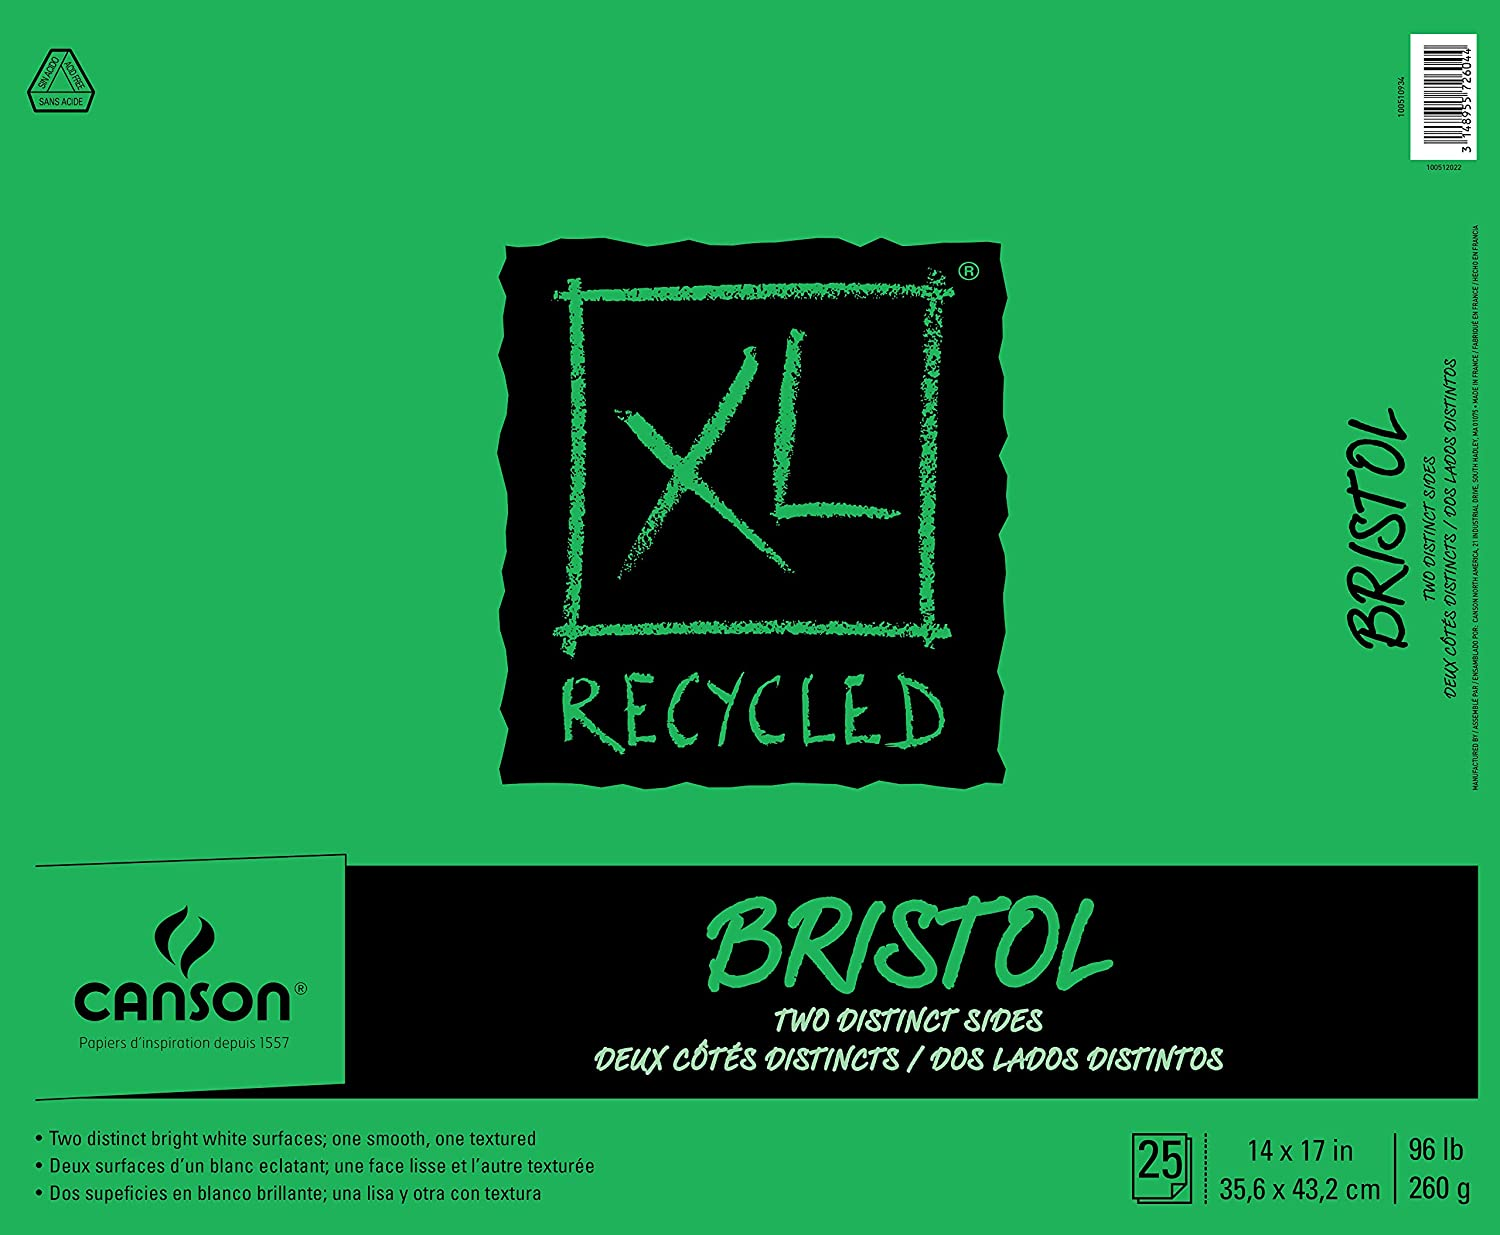 """Canson XL Series Recycled Bristol Pad, 14"""" x 17"""", Fold-over Cover, 25 Sheets (100510934)"""